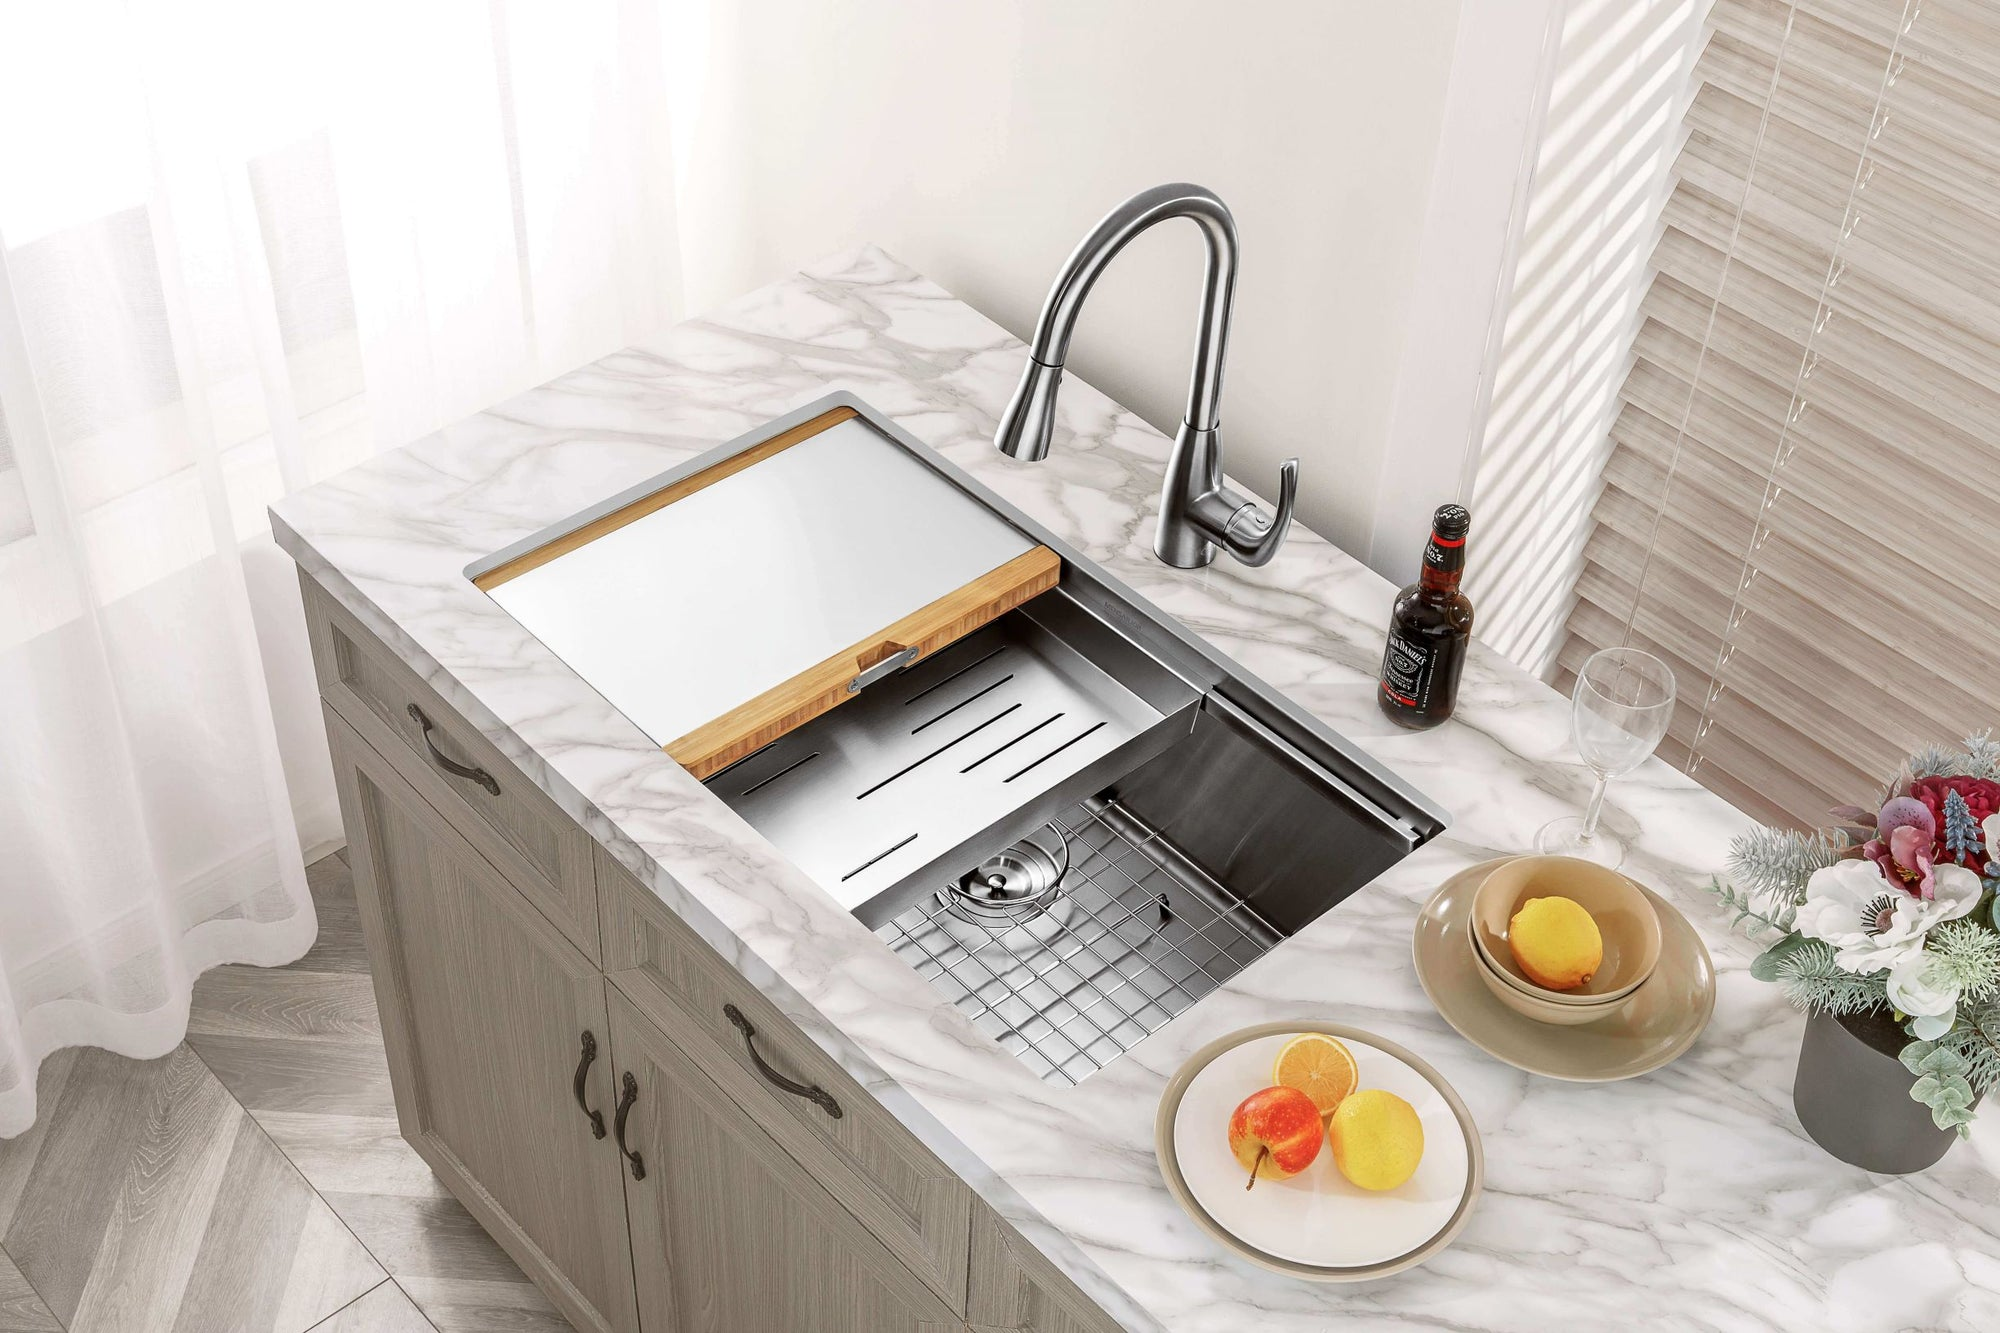 Mensarjor 32'' X 19'' Undermount Kitchen Sink Workstation